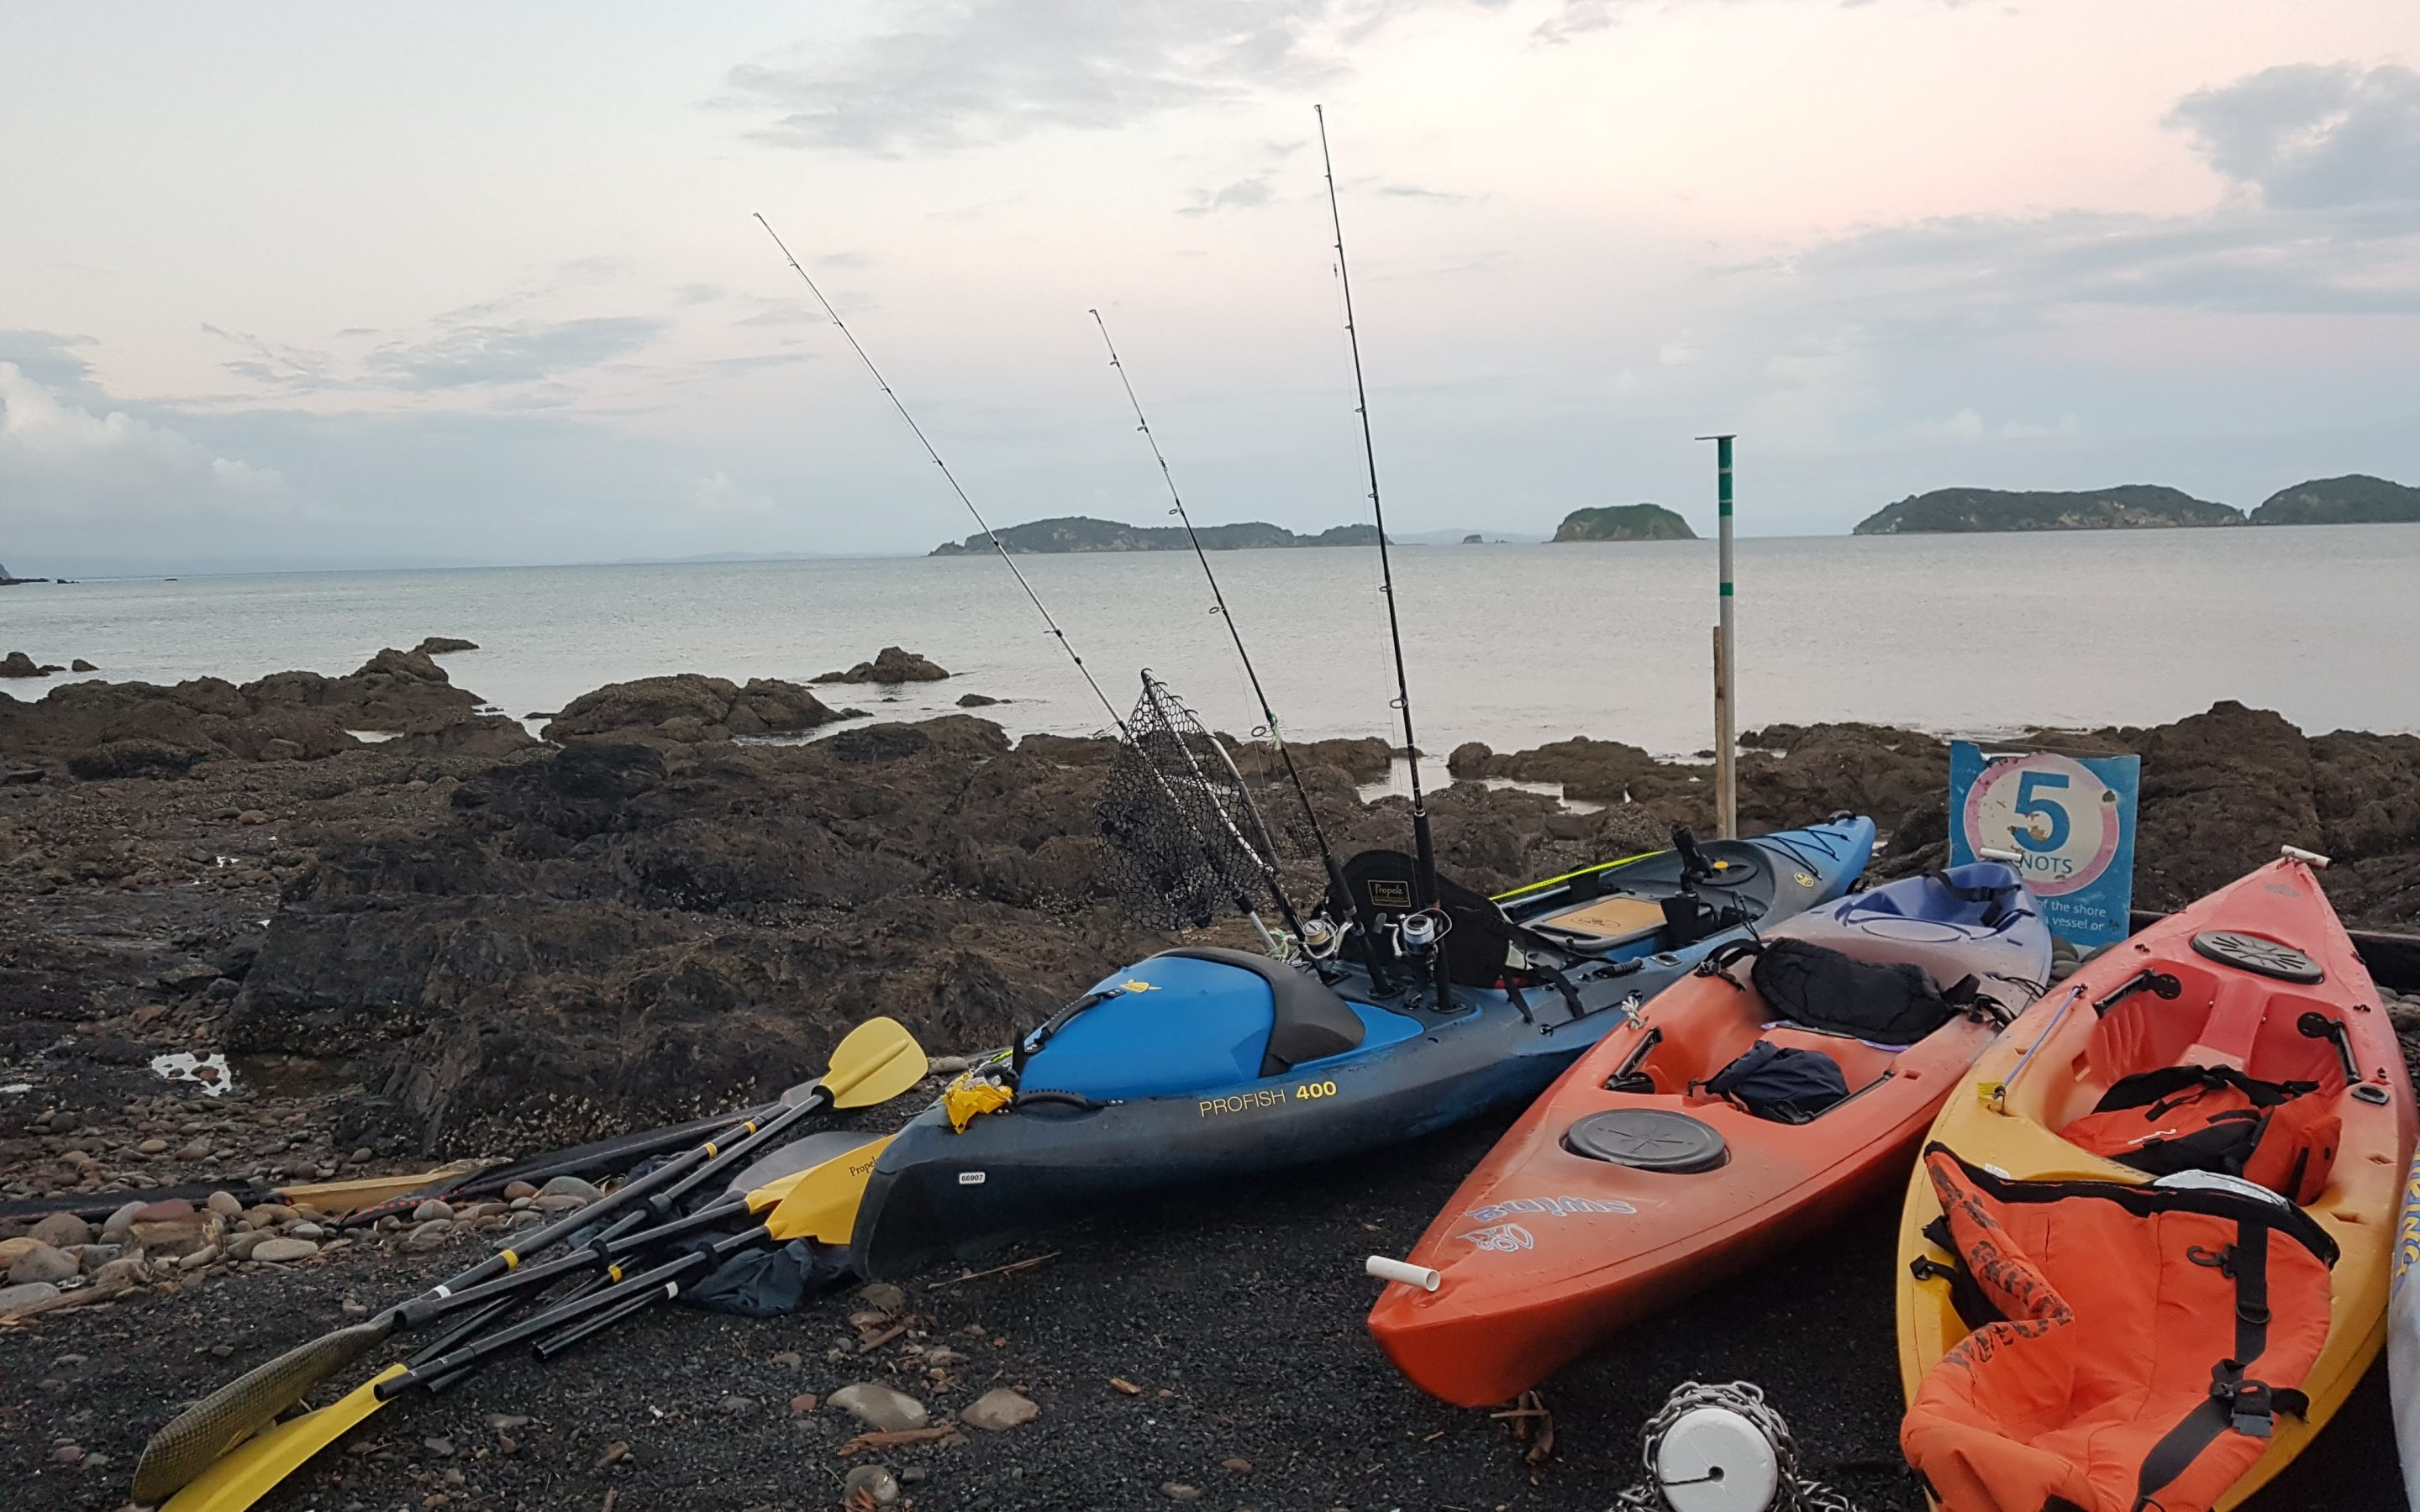 Amodeo Bay - March 2018